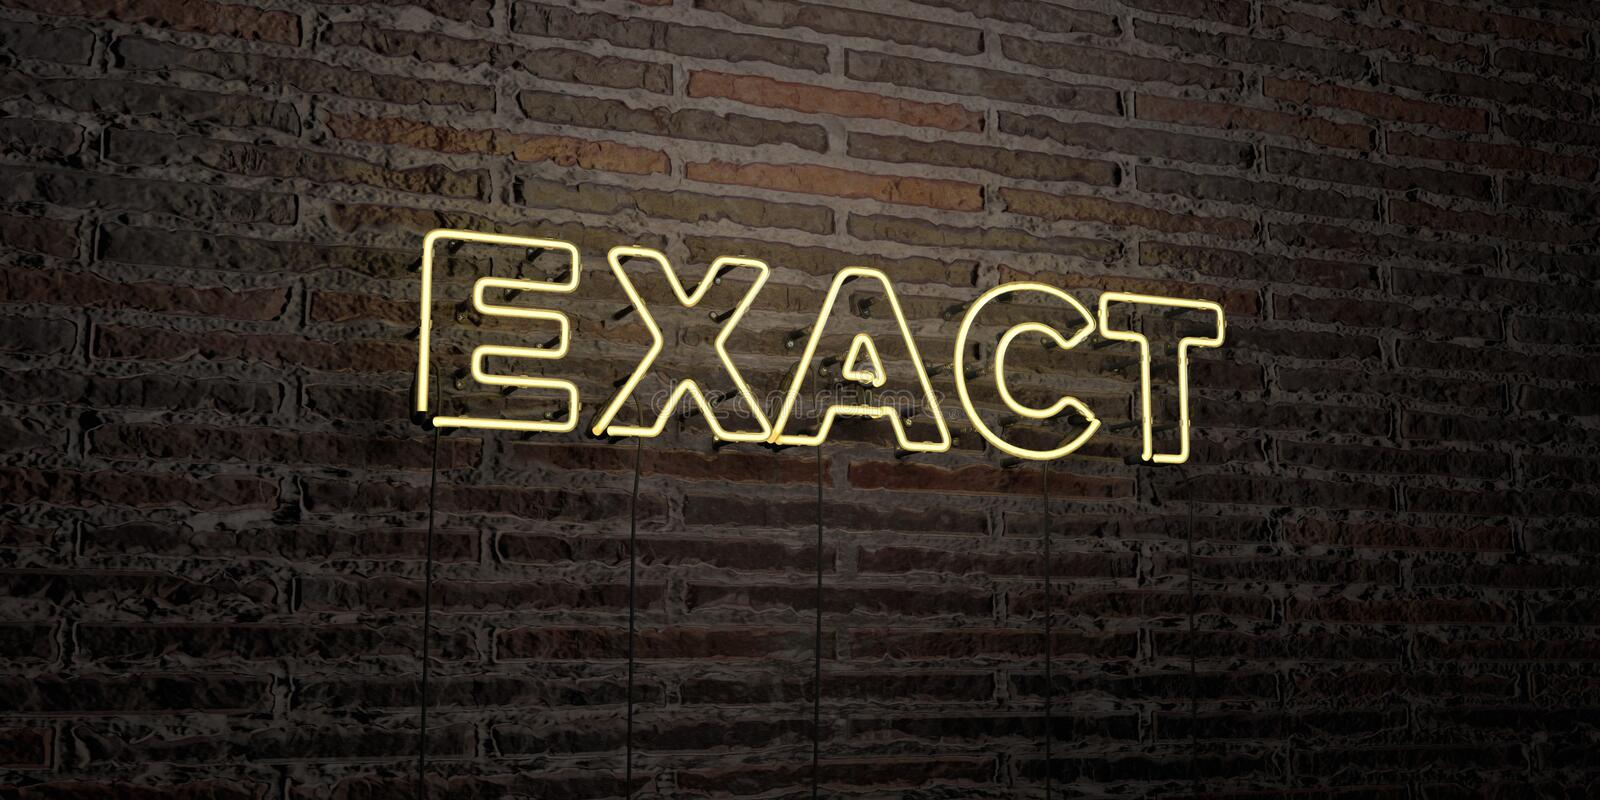 EXACT -Realistic Neon Sign on Brick Wall background - 3D rendered royalty free stock image. Can be used for online banner ads and direct mailers vector illustration